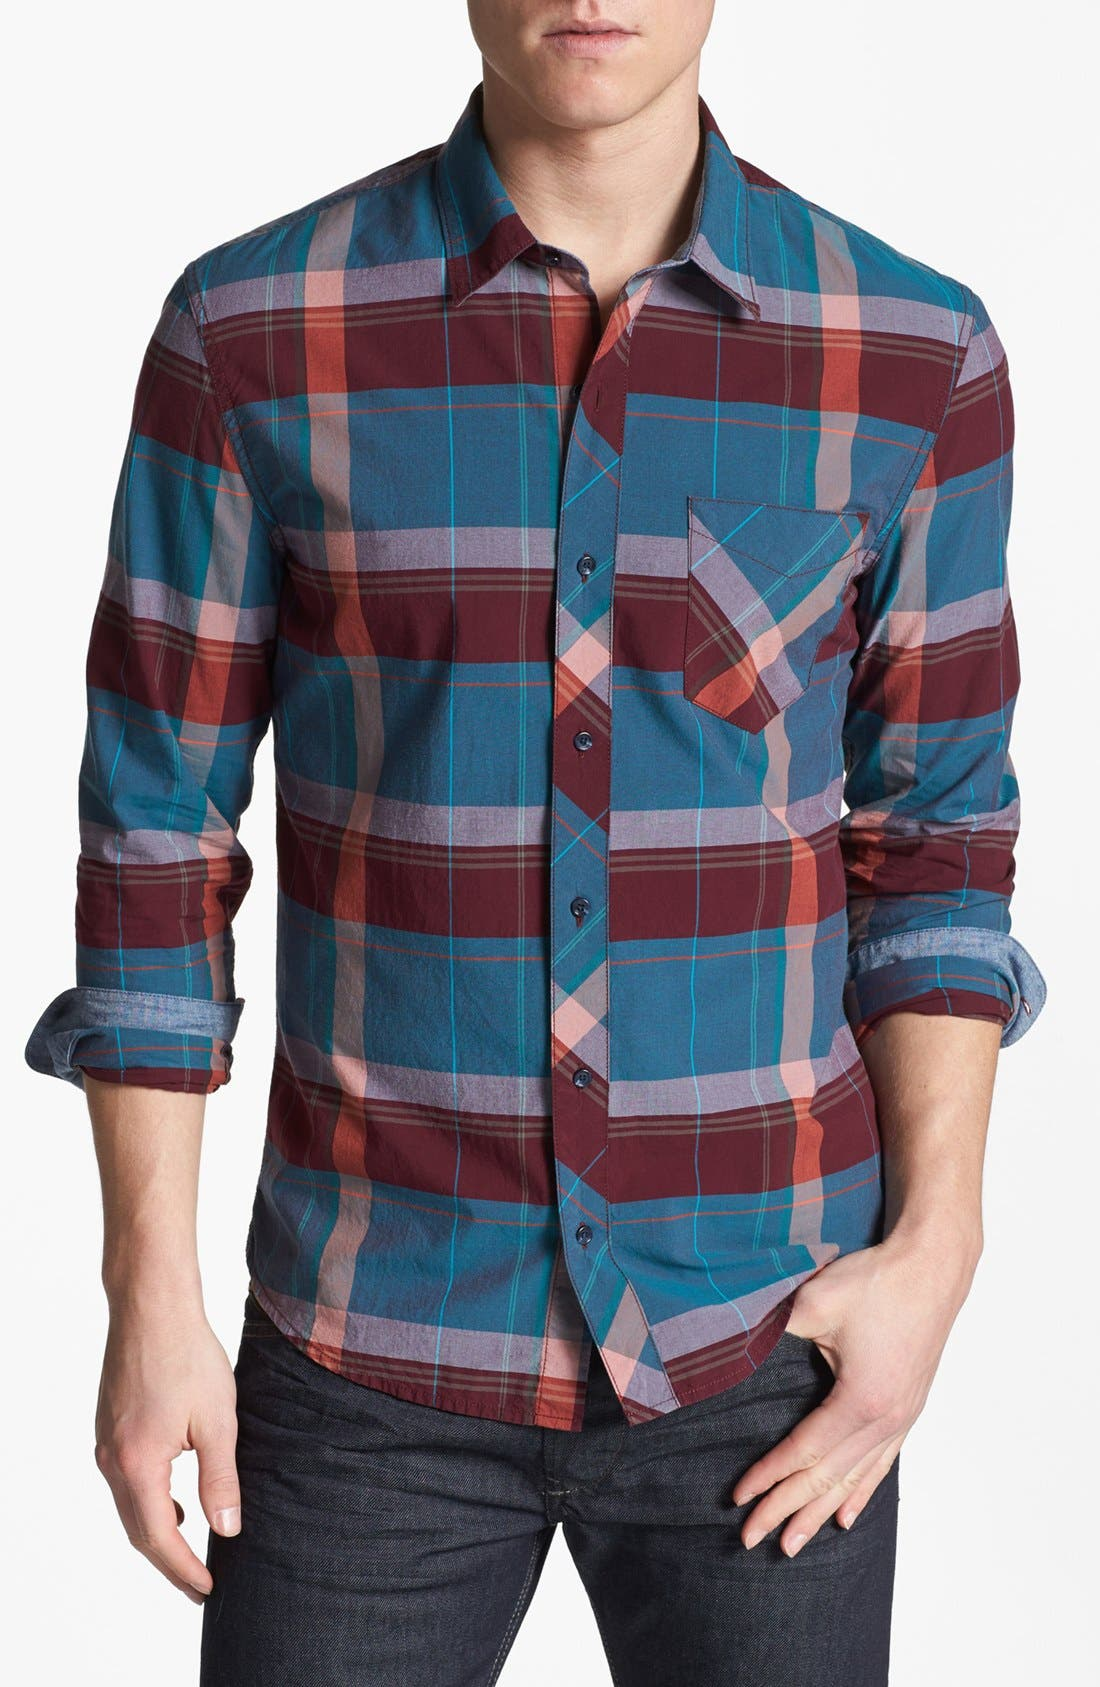 Main Image - 1901 Trim Fit Plaid Poplin Shirt